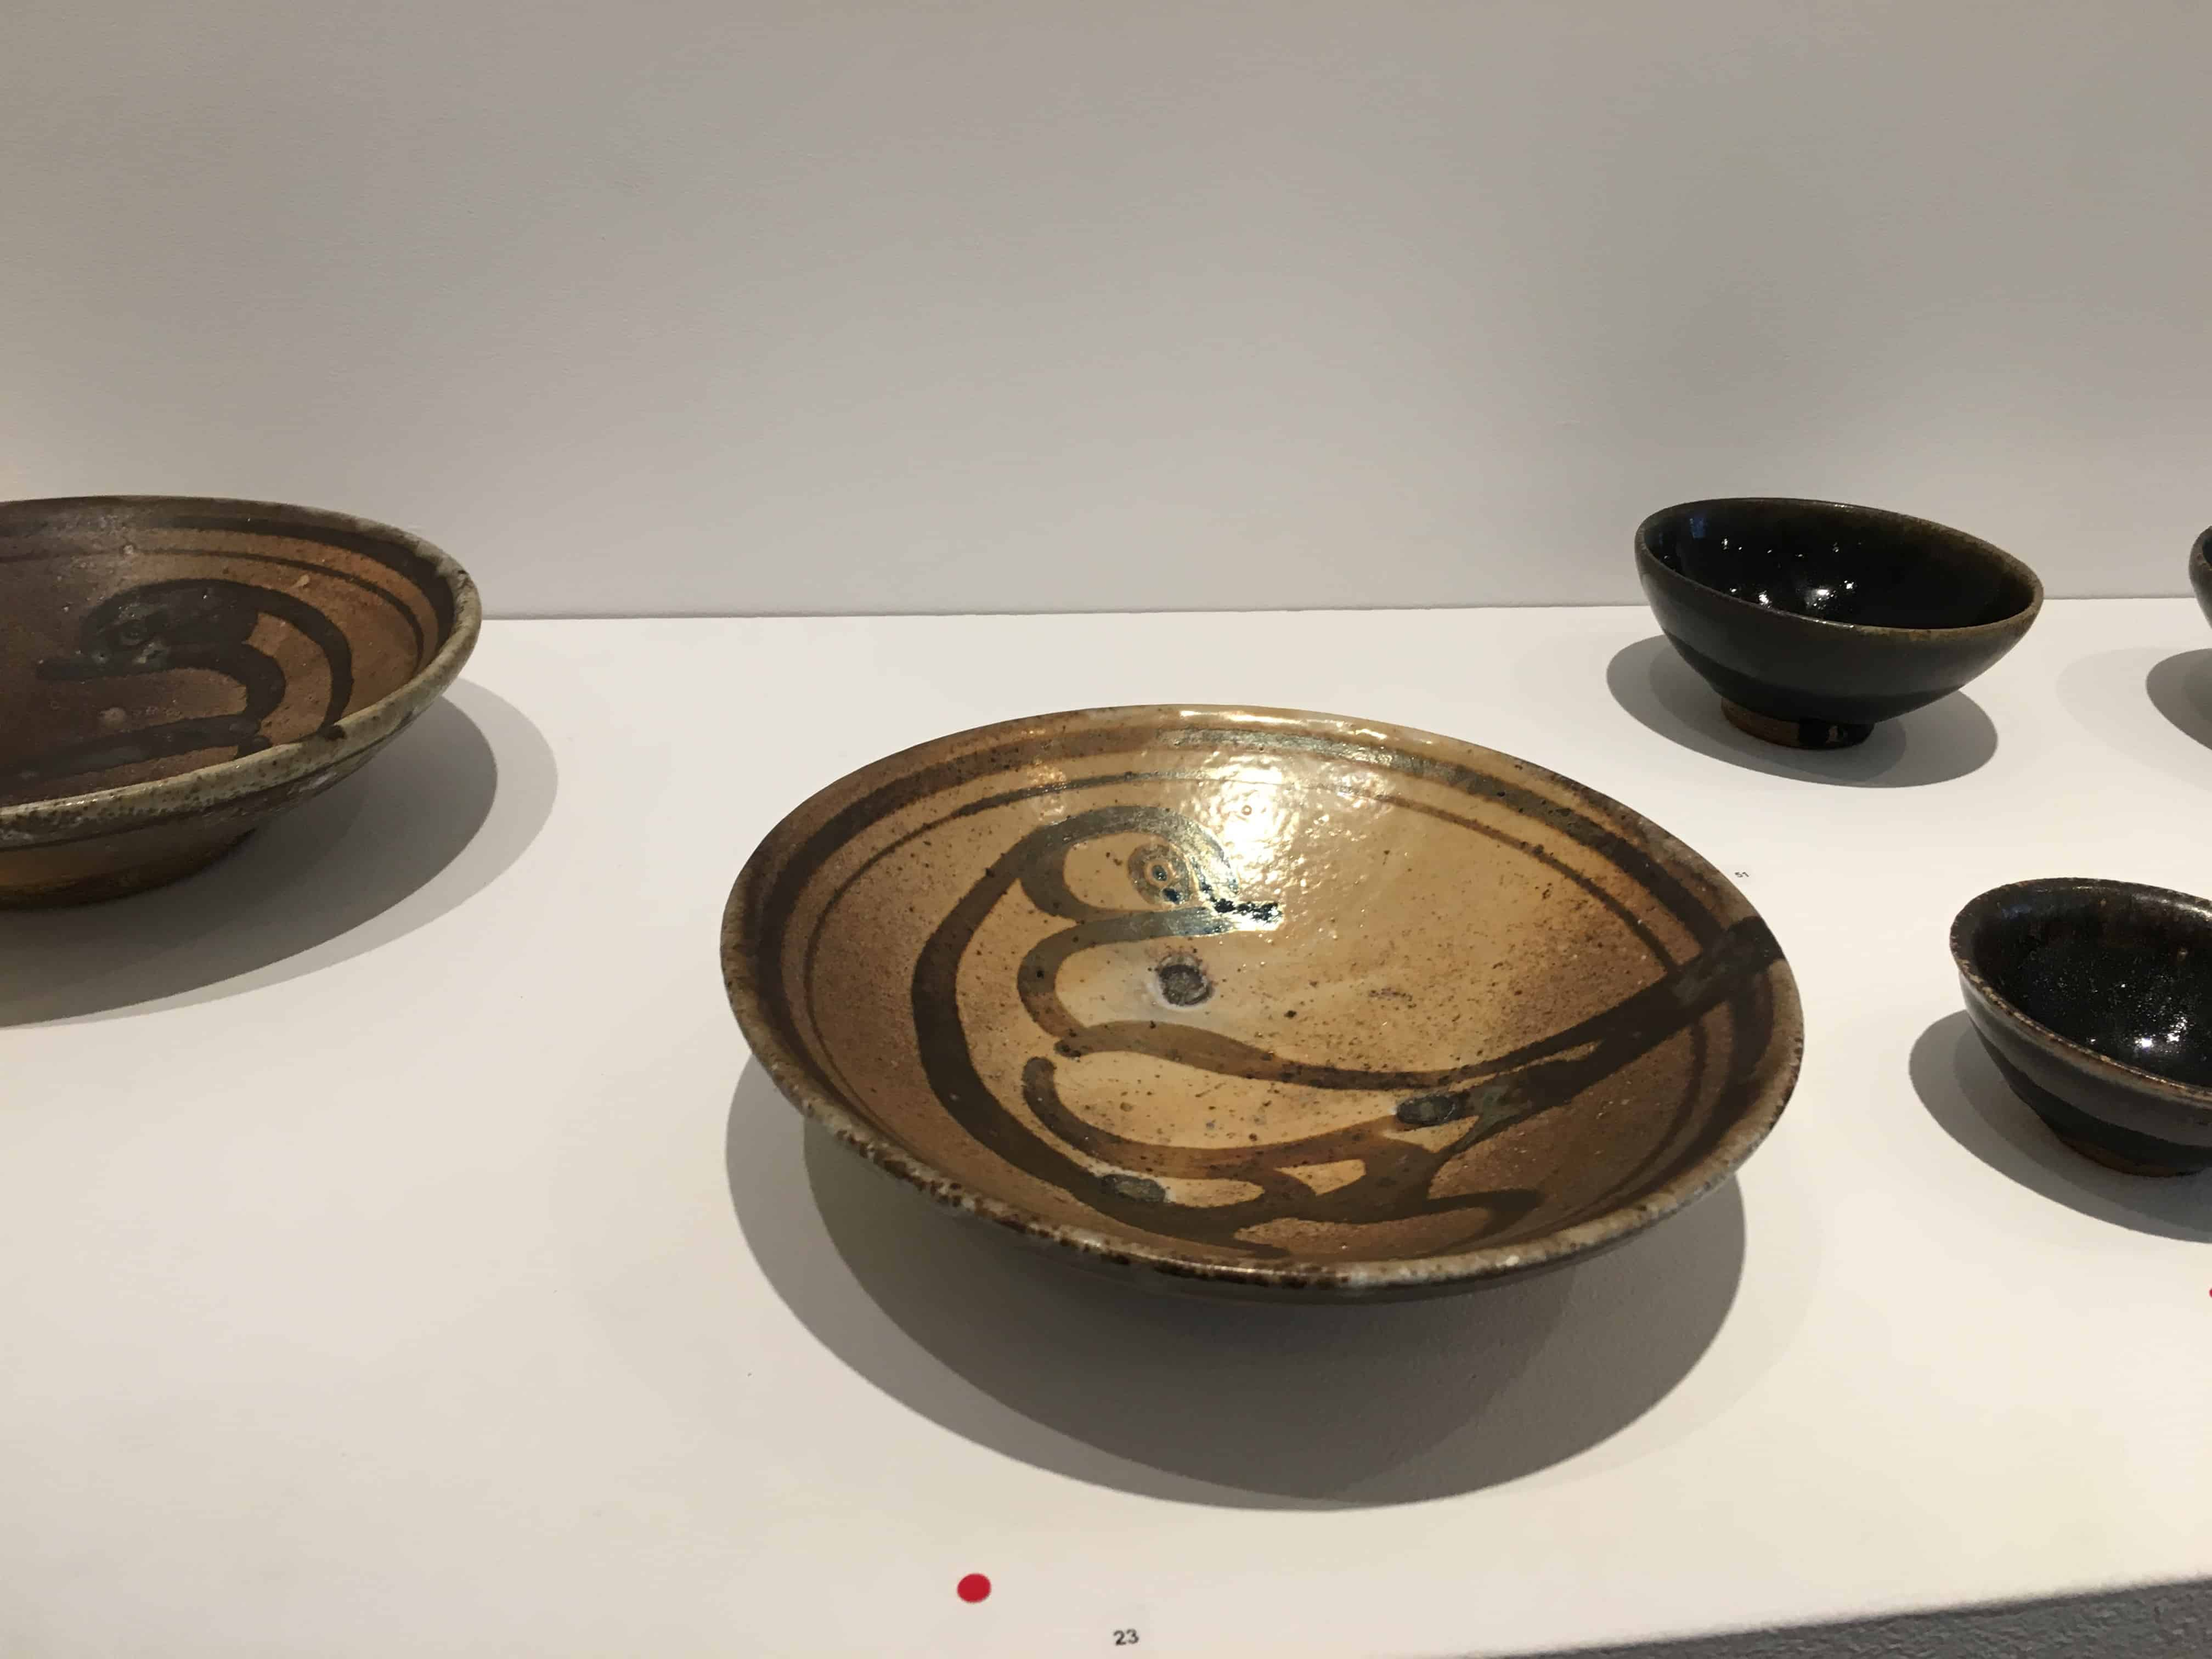 More bowls by Svend Bayer.